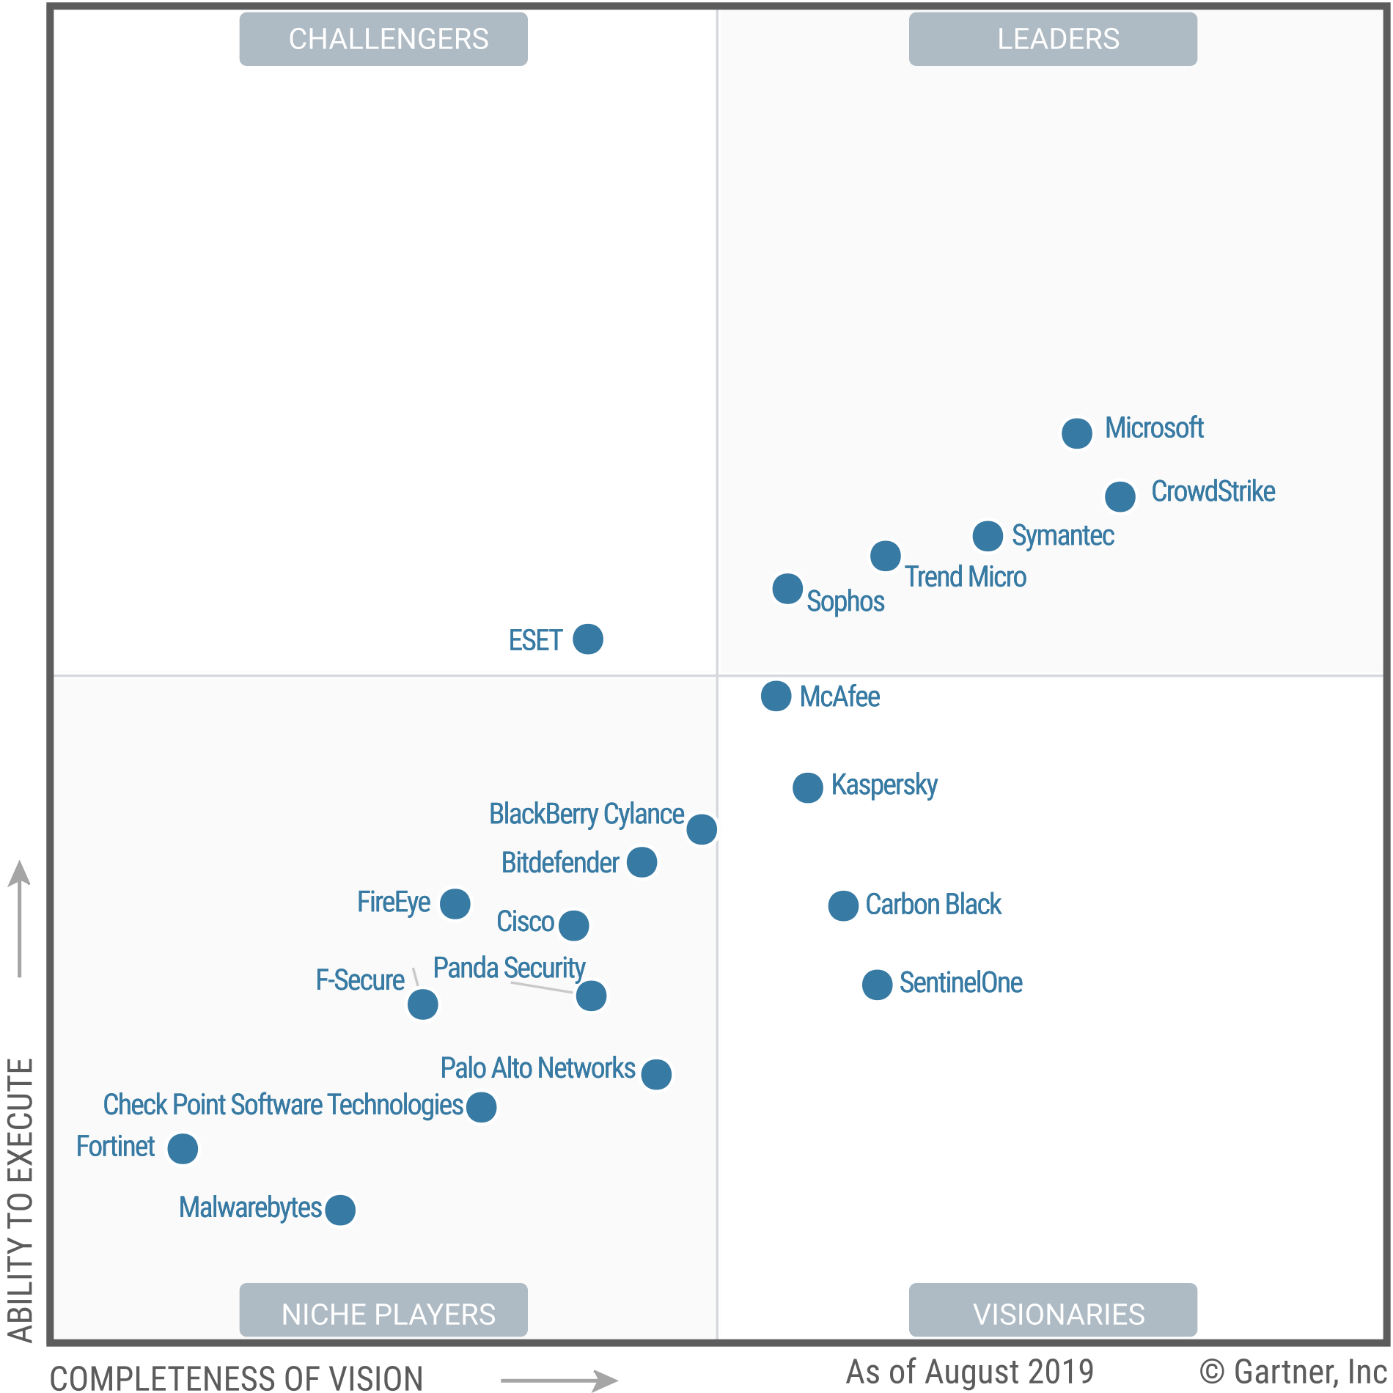 Magic Quadrant for Endpoint Protection Platforms 2019 (G00352135)